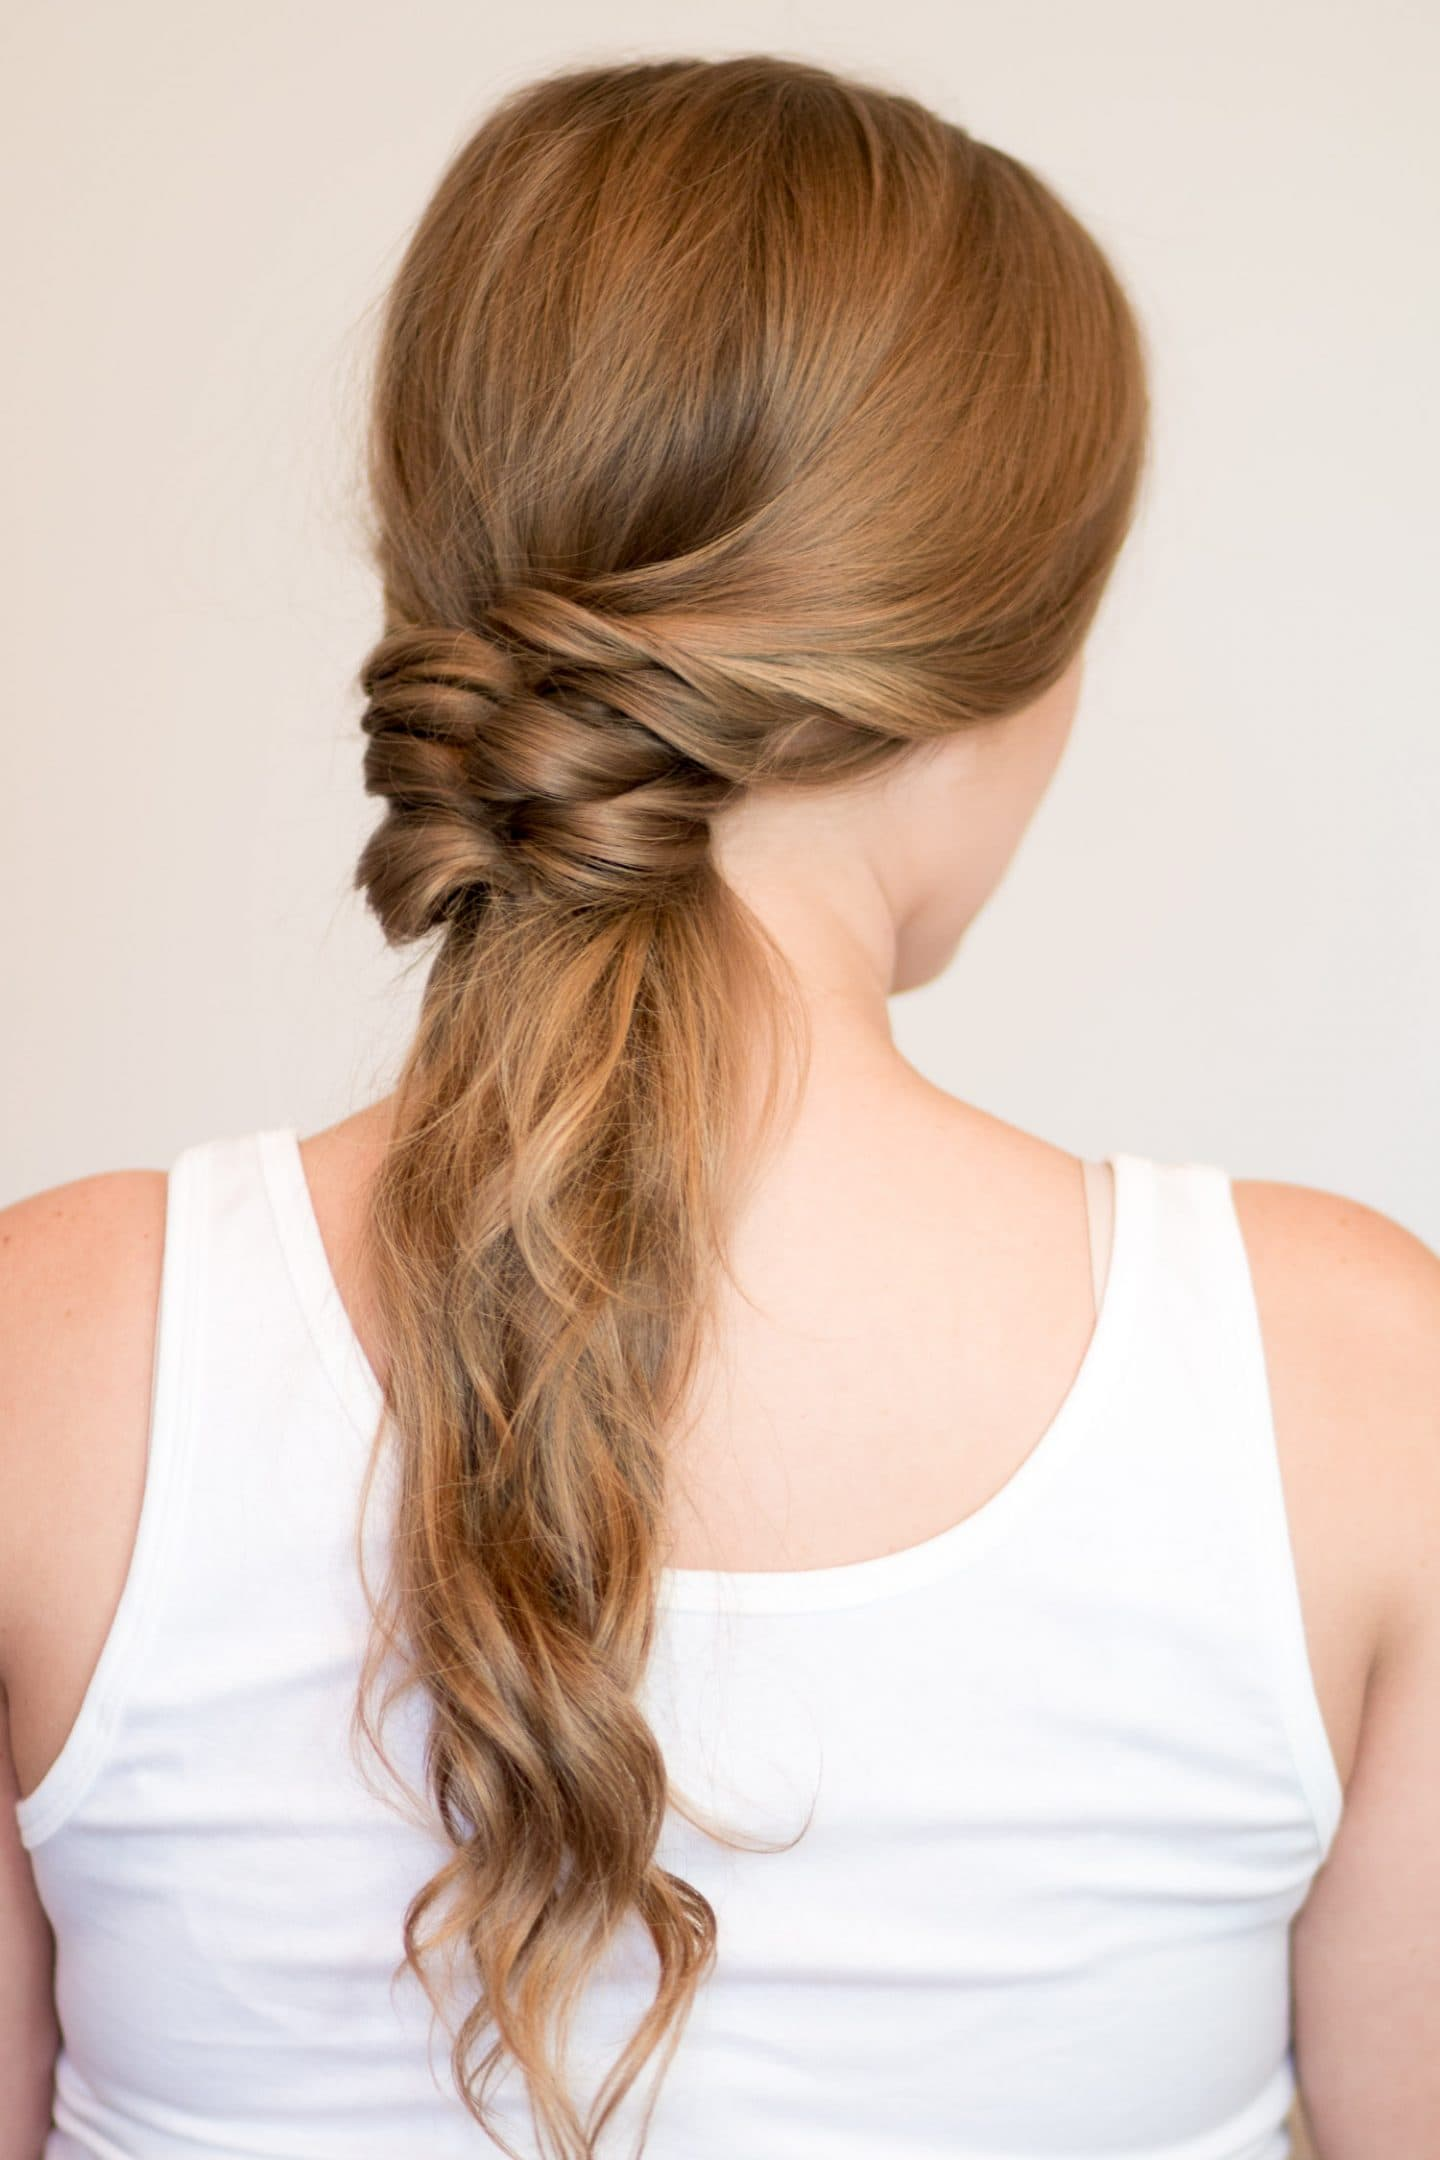 Faux Braided Ponytail hair tutorial | 4 Easy heatless hairstyles for long hair that don't require hair styling skills or braiding! Learn how to create a faux braided ponytail, messy faux fishtail braid, twisted half-up, and messy braided bun in these easy hair tutorial by Orlando, Florida beauty blogger Ashley Brooke Nicholas! #MyHCLook sponsored by Hair Cuttery! | easy hairstyles, no-heat hairstyle, faux braids, faux braid tutorial, how to braid your hair, fishtail braid, long dirty blonde hair